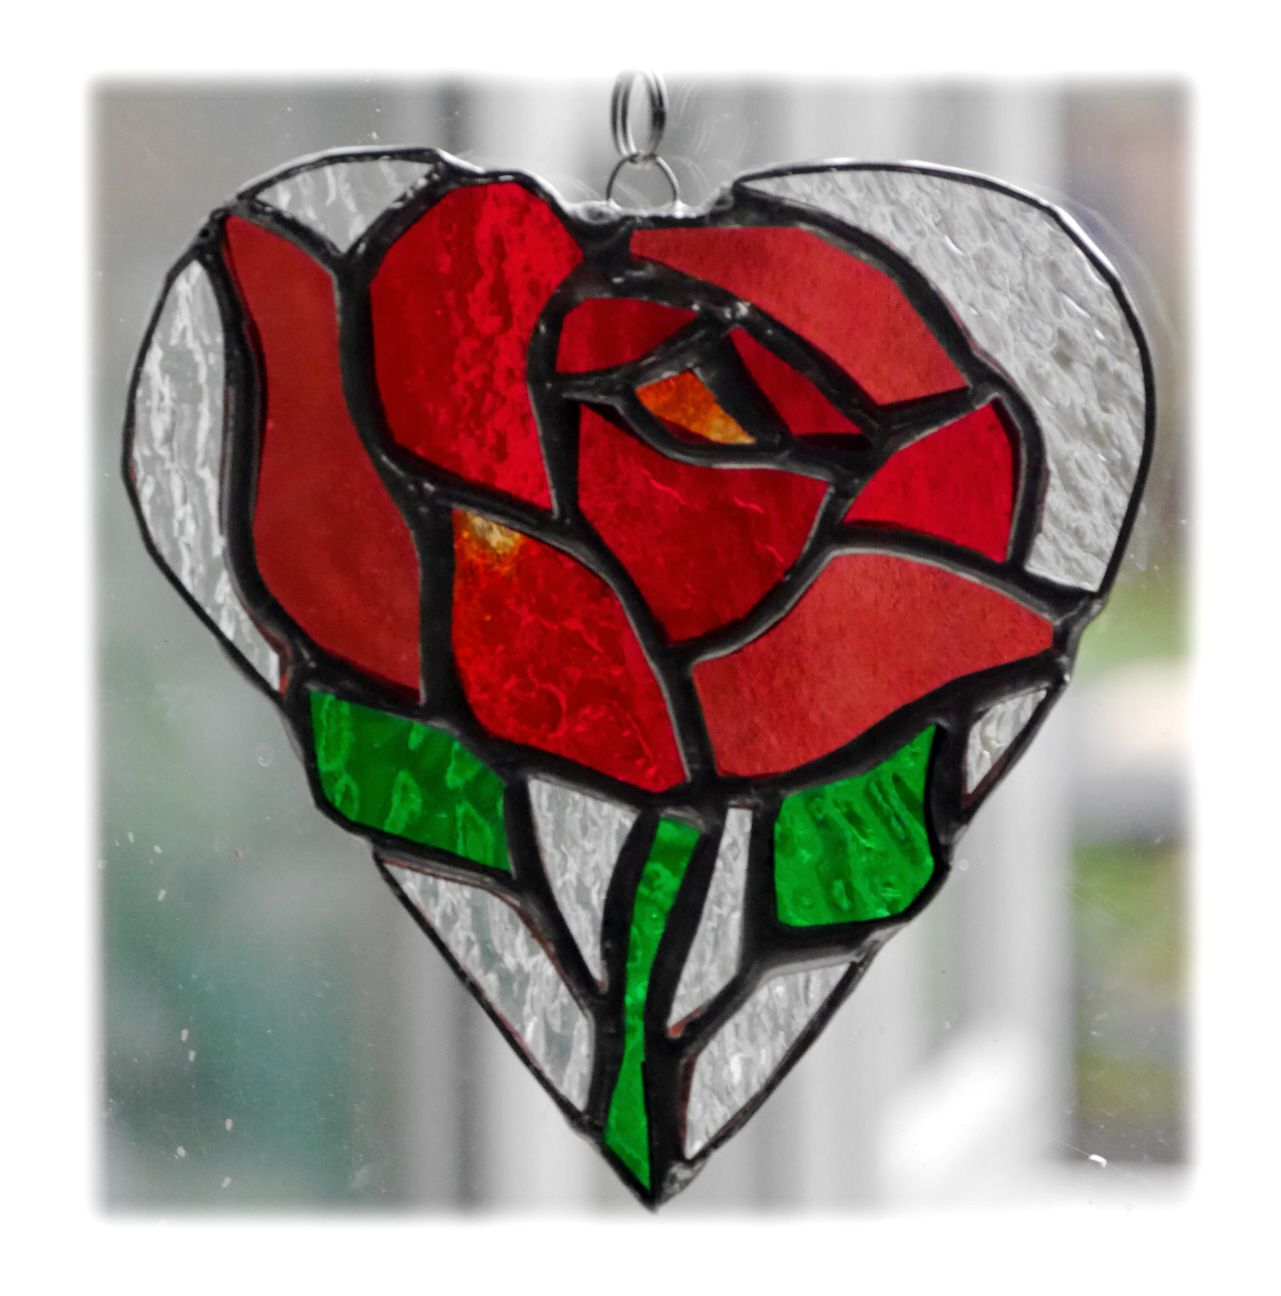 RED Rose full Heart 017 #1901 FREE 16.00